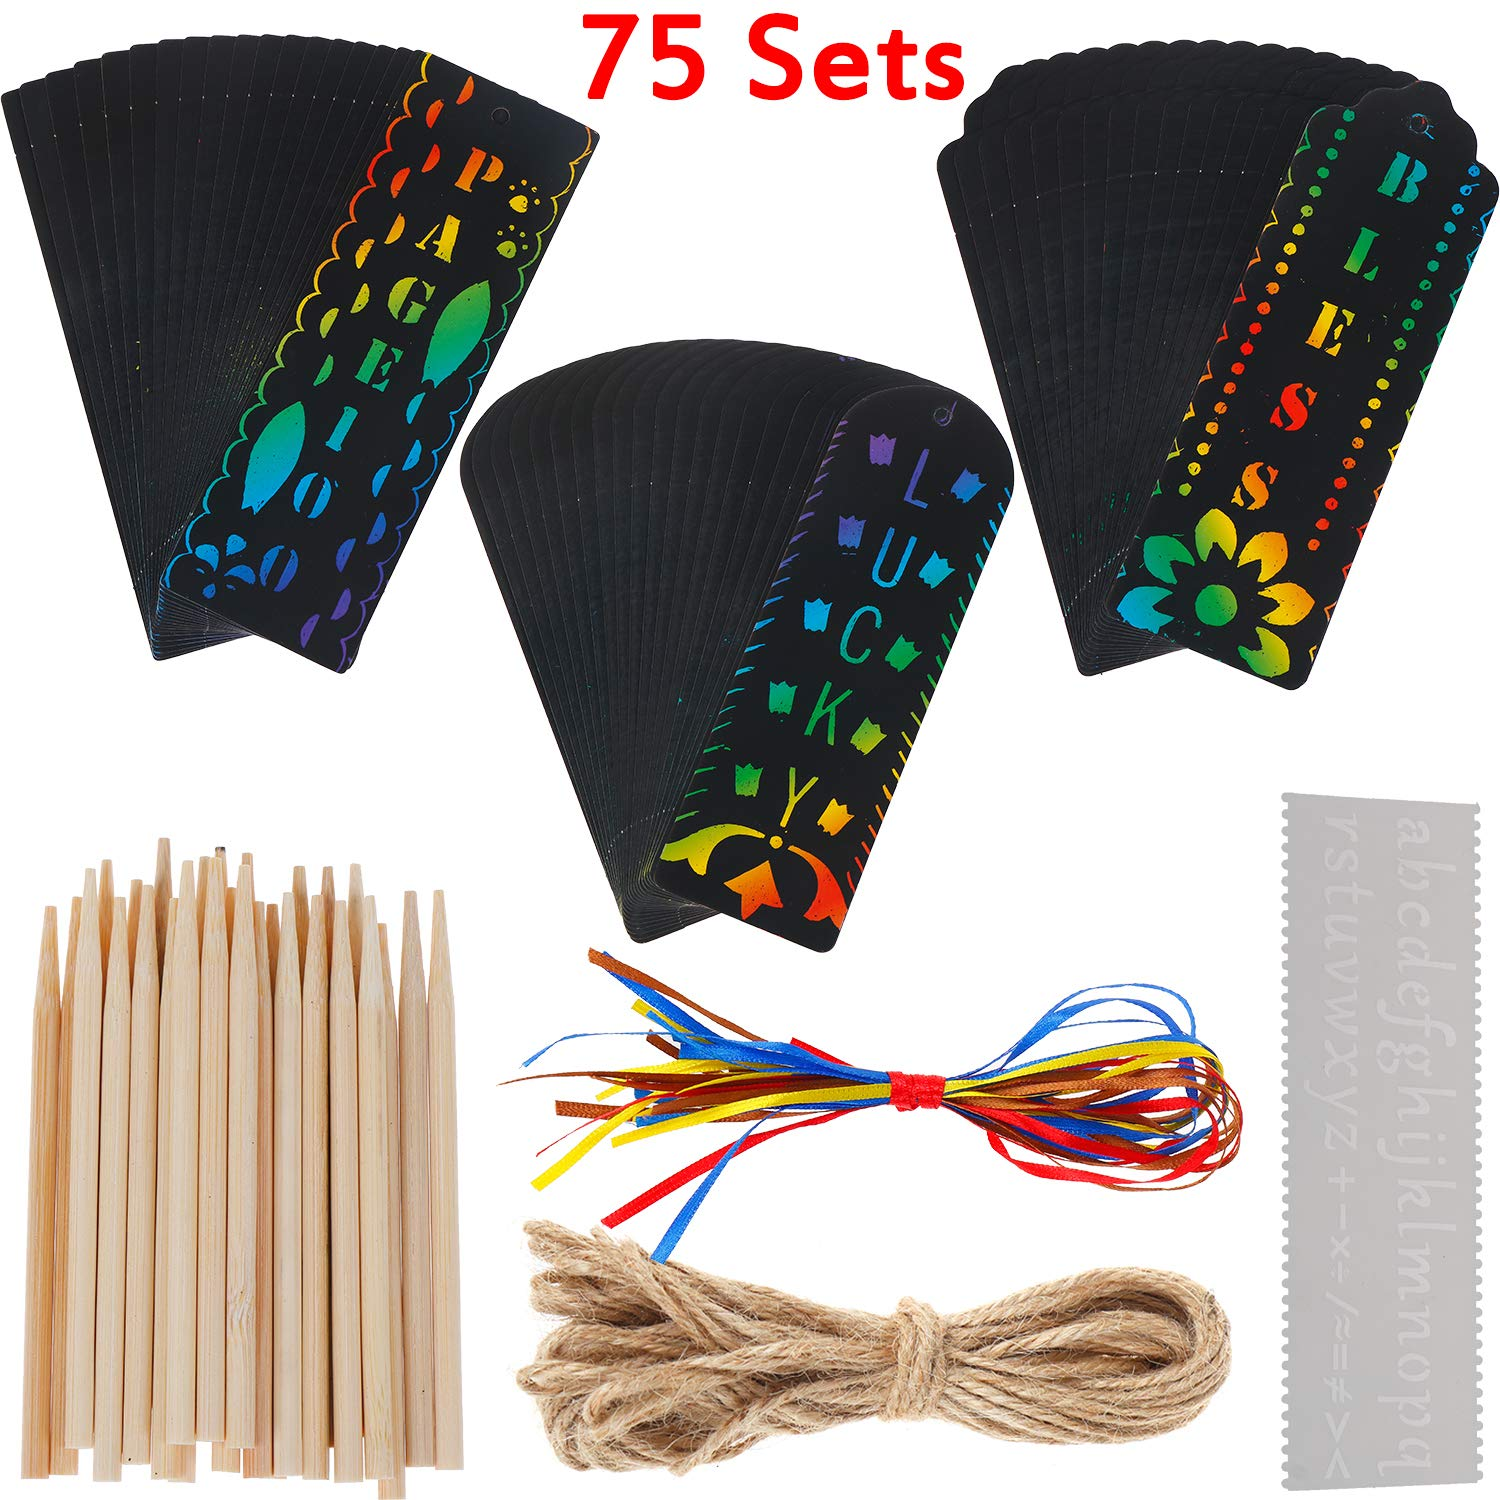 15 Pieces Wood Stylus Honoson 75 Pieces Scratch Paper Scratch Bookmarks DIY Bookmarks 75 Pieces Colorful Rope for Craft Supplies